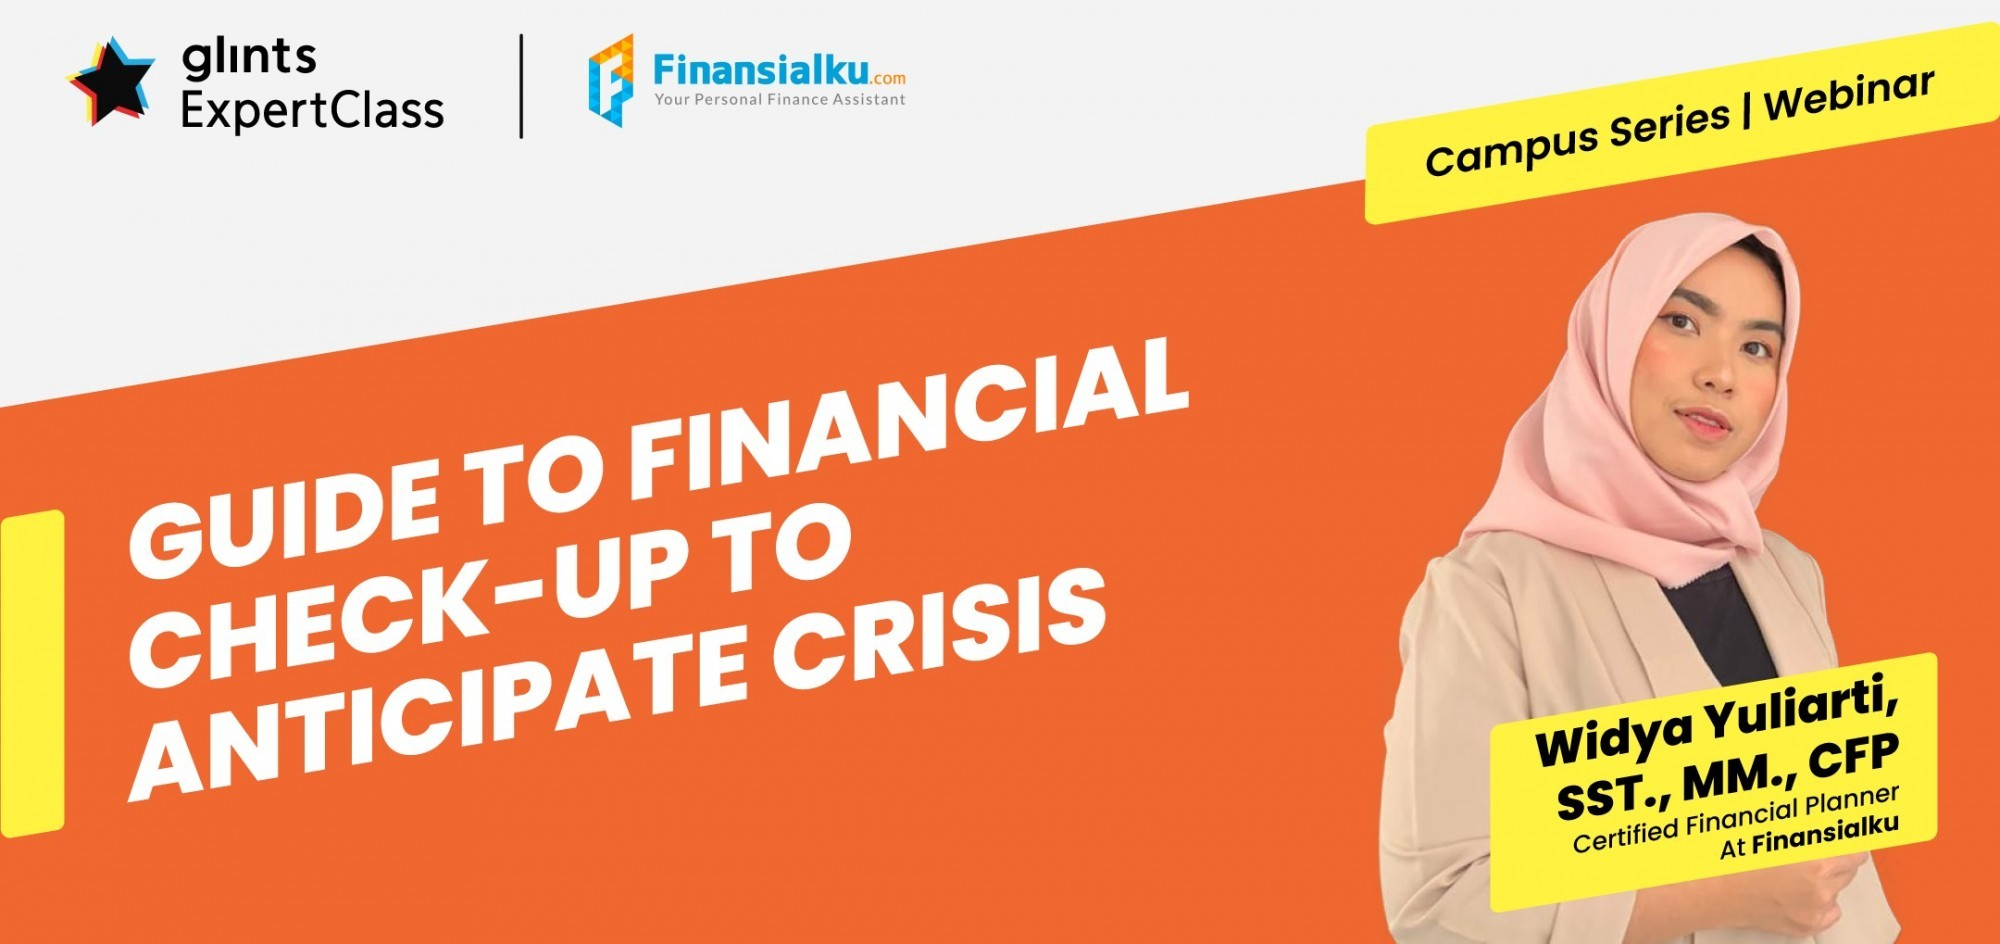 [Online Glints ExpertClass with Finansialku] Guide to Financial Check-Up to Anticipate Crisis